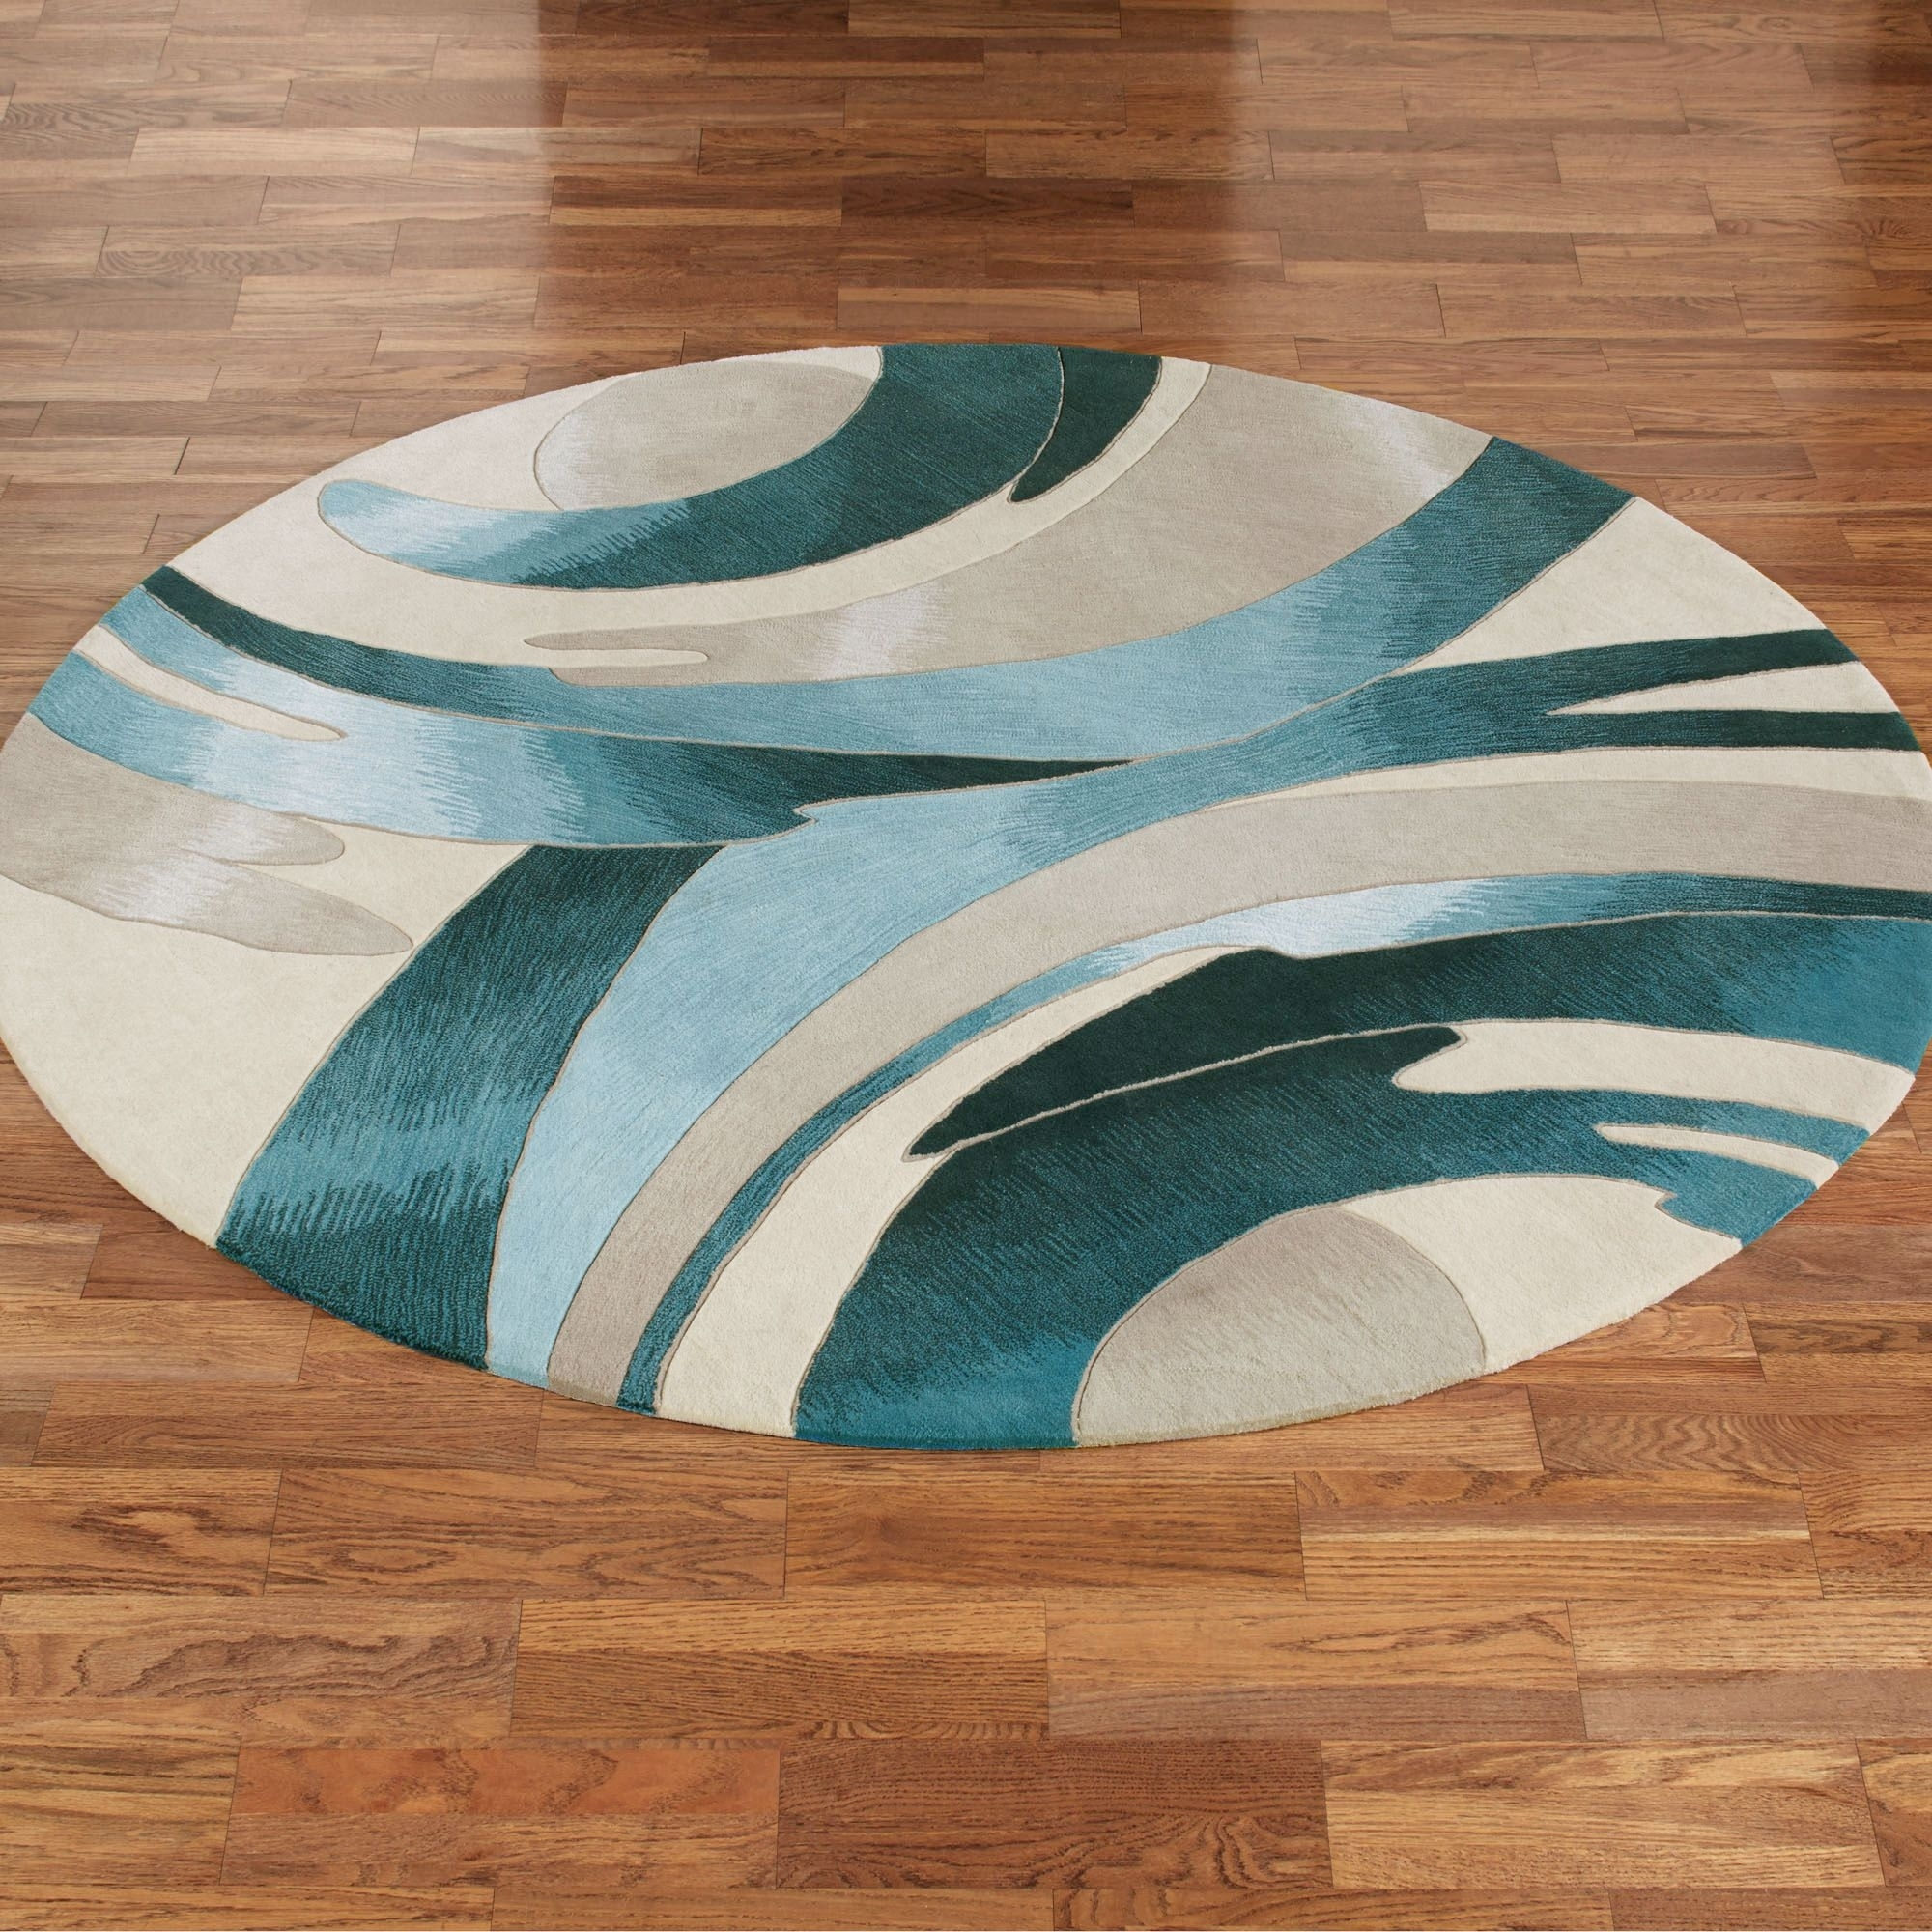 Cool Round Area Rugs Cheap Small Circular Rugs Telstraus Home Rug Within Small Circular Rugs (Image 4 of 15)